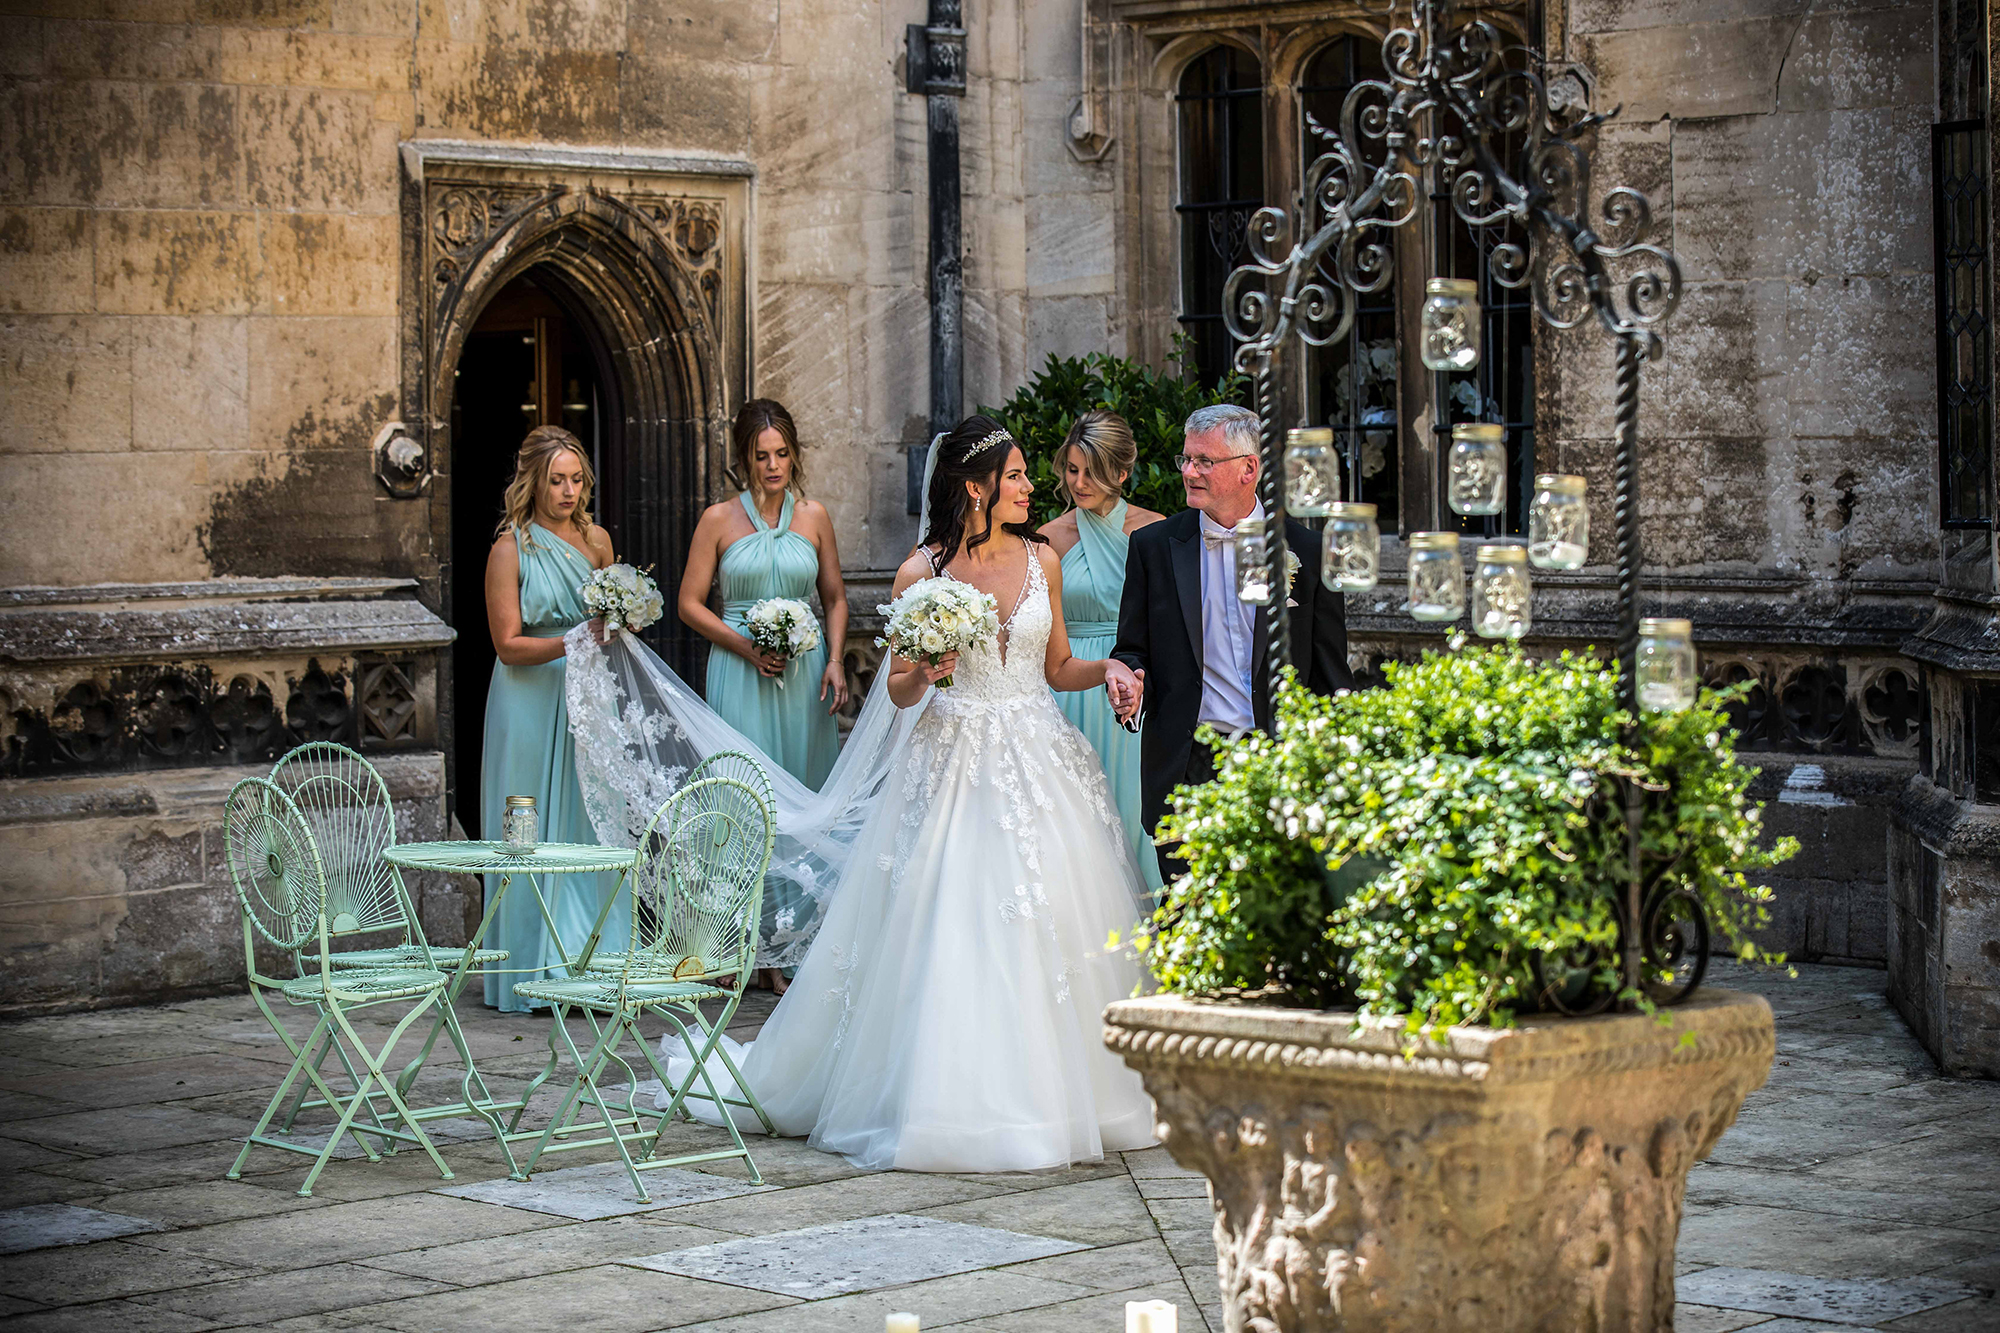 The bride, brides father and bridesmaids in the courtyard of Hengrave Hall